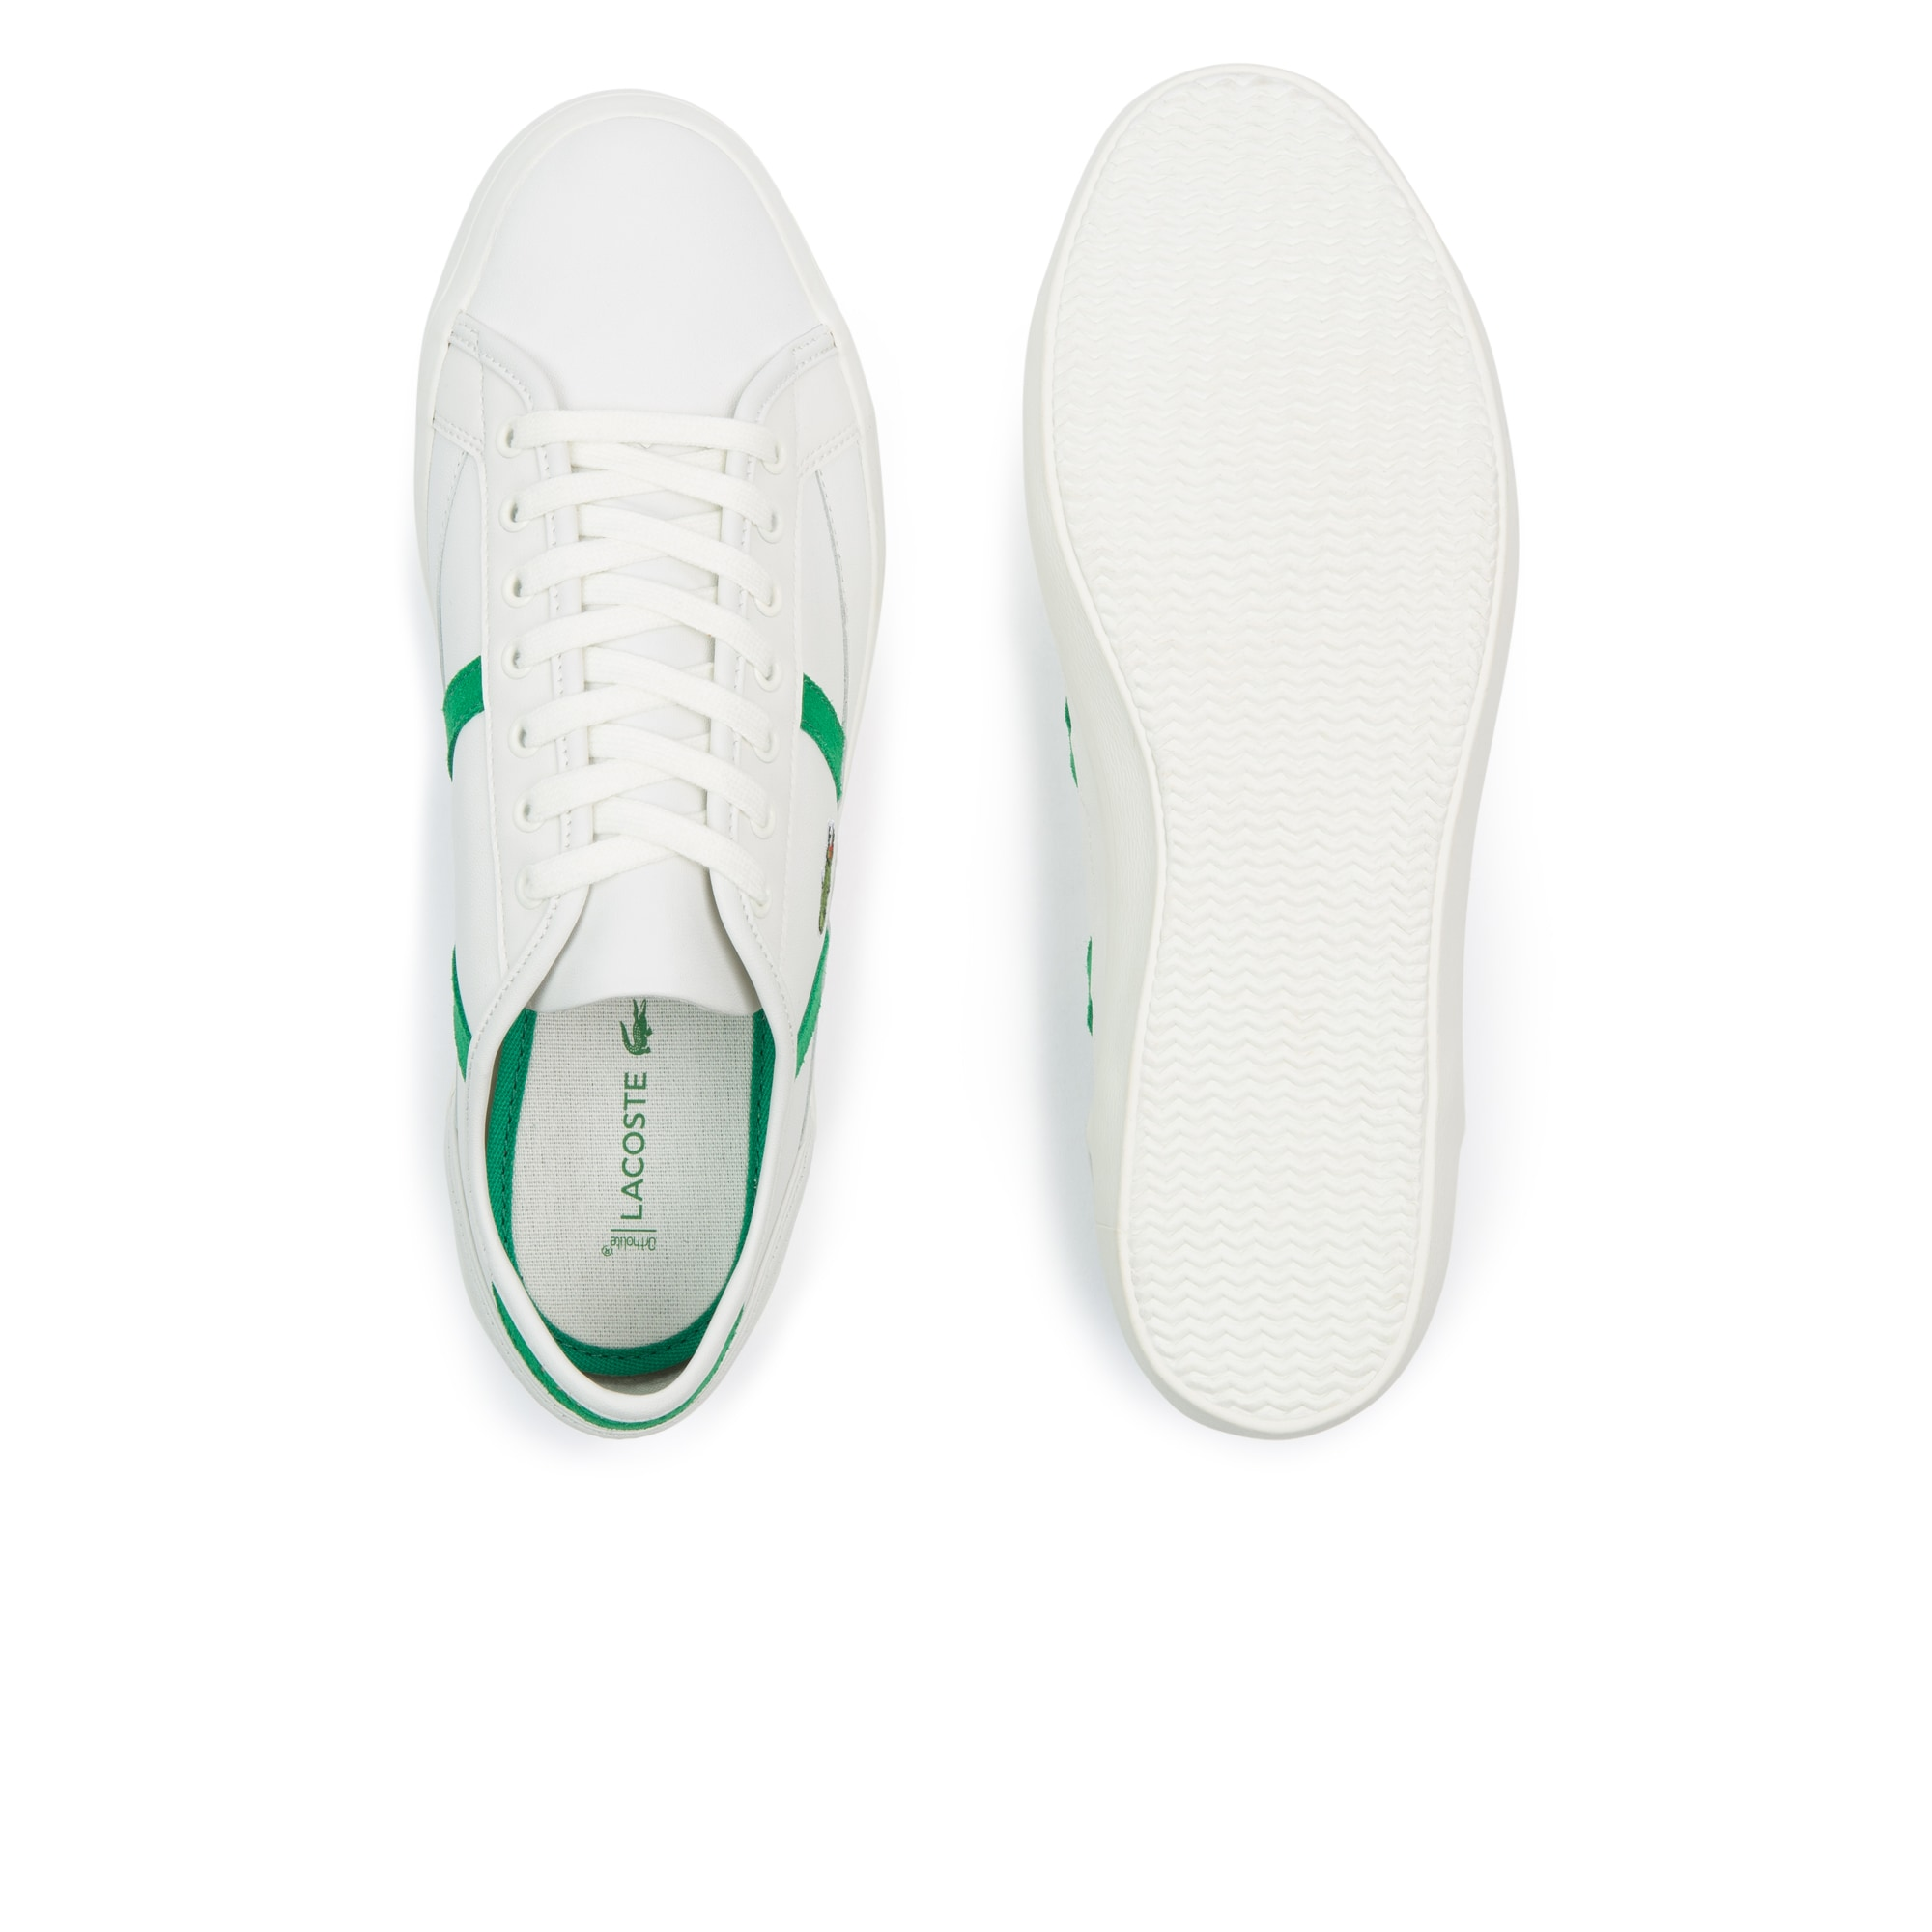 Men's Sideline Leather and Suede Sneakers